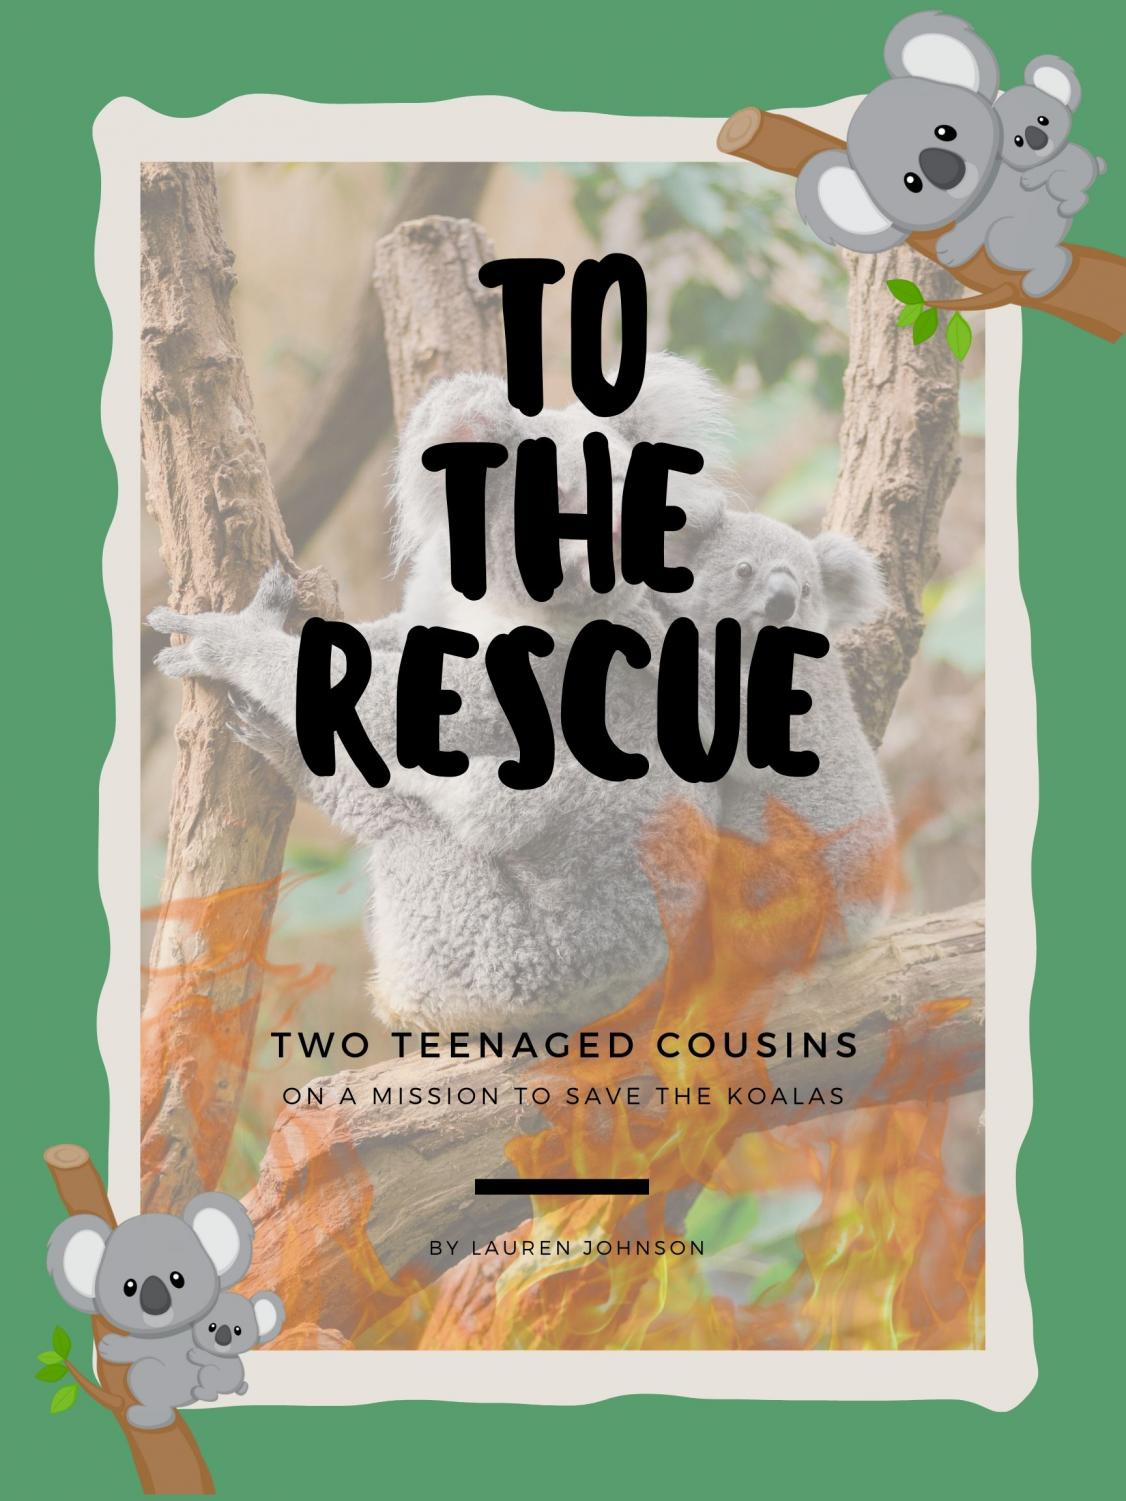 Trying to help the koalas in Australia, two teenage cousins rescue several.